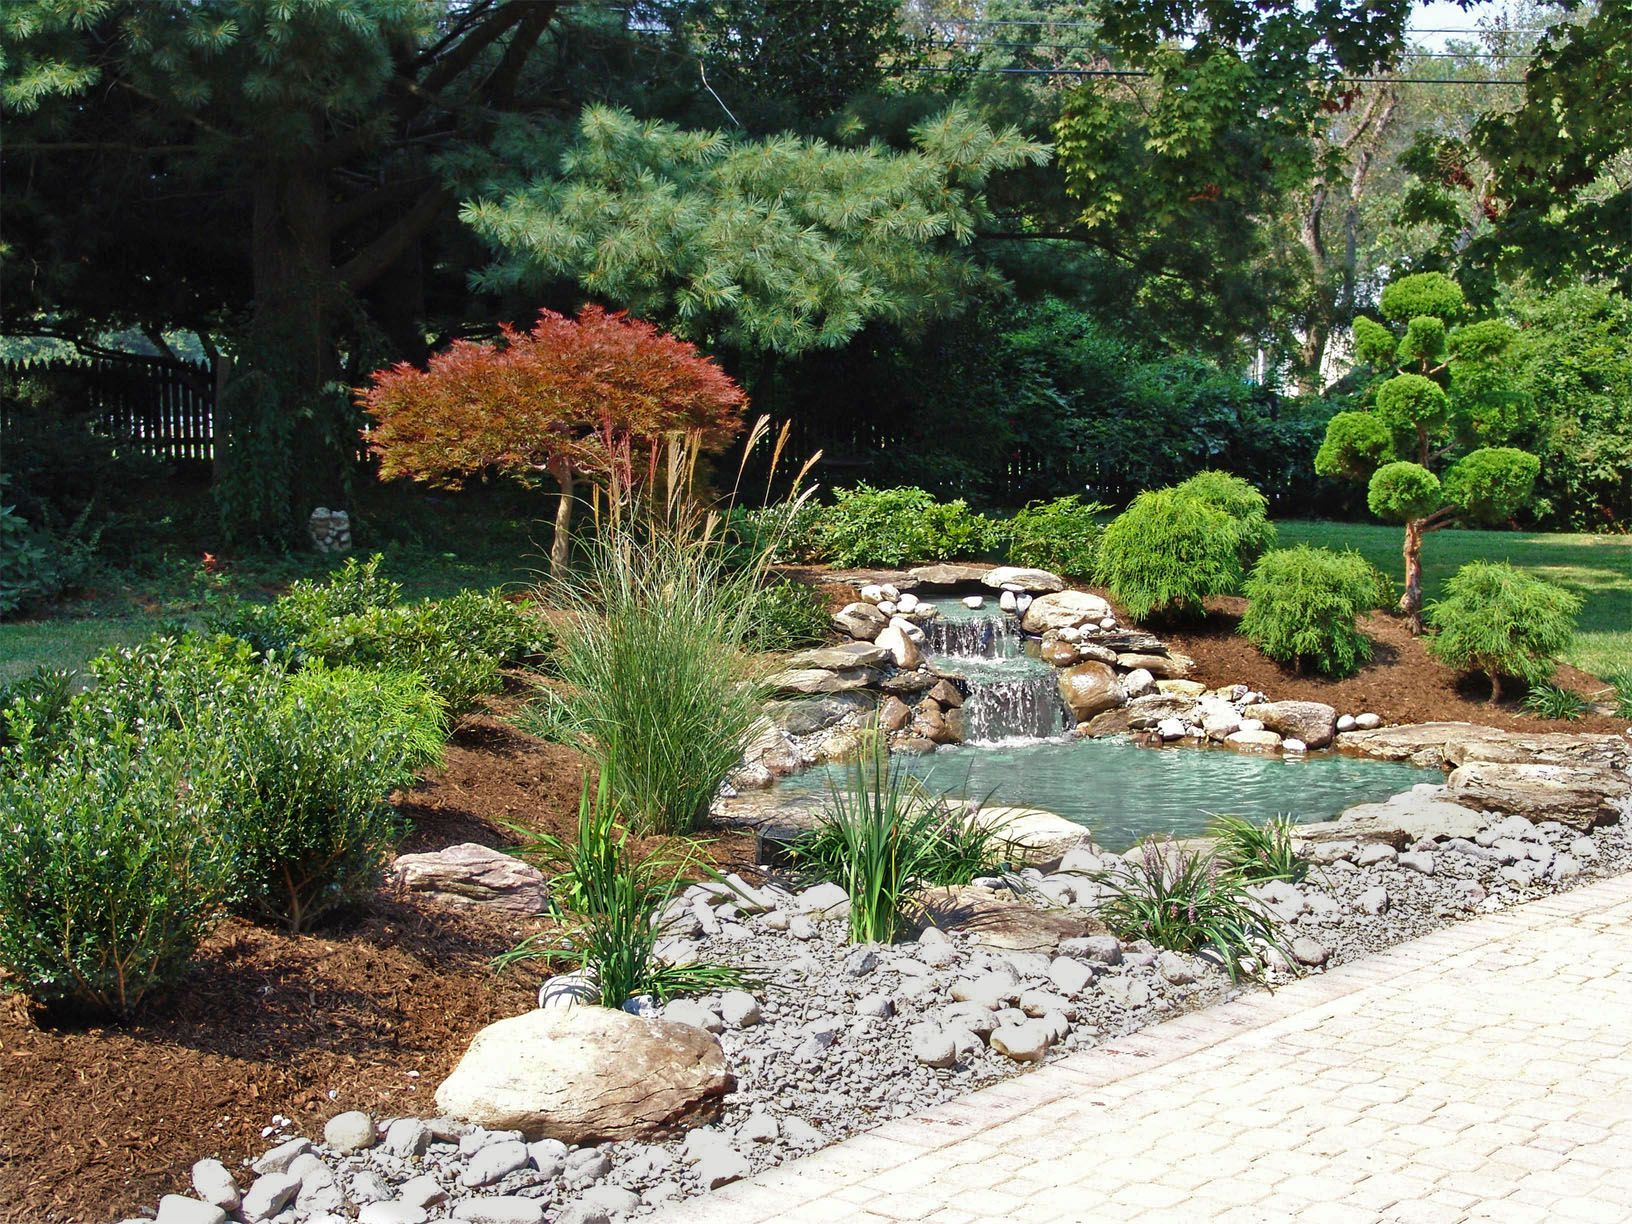 Japanese garden landscape design with waterfall and pond for Japanese landscape architecture